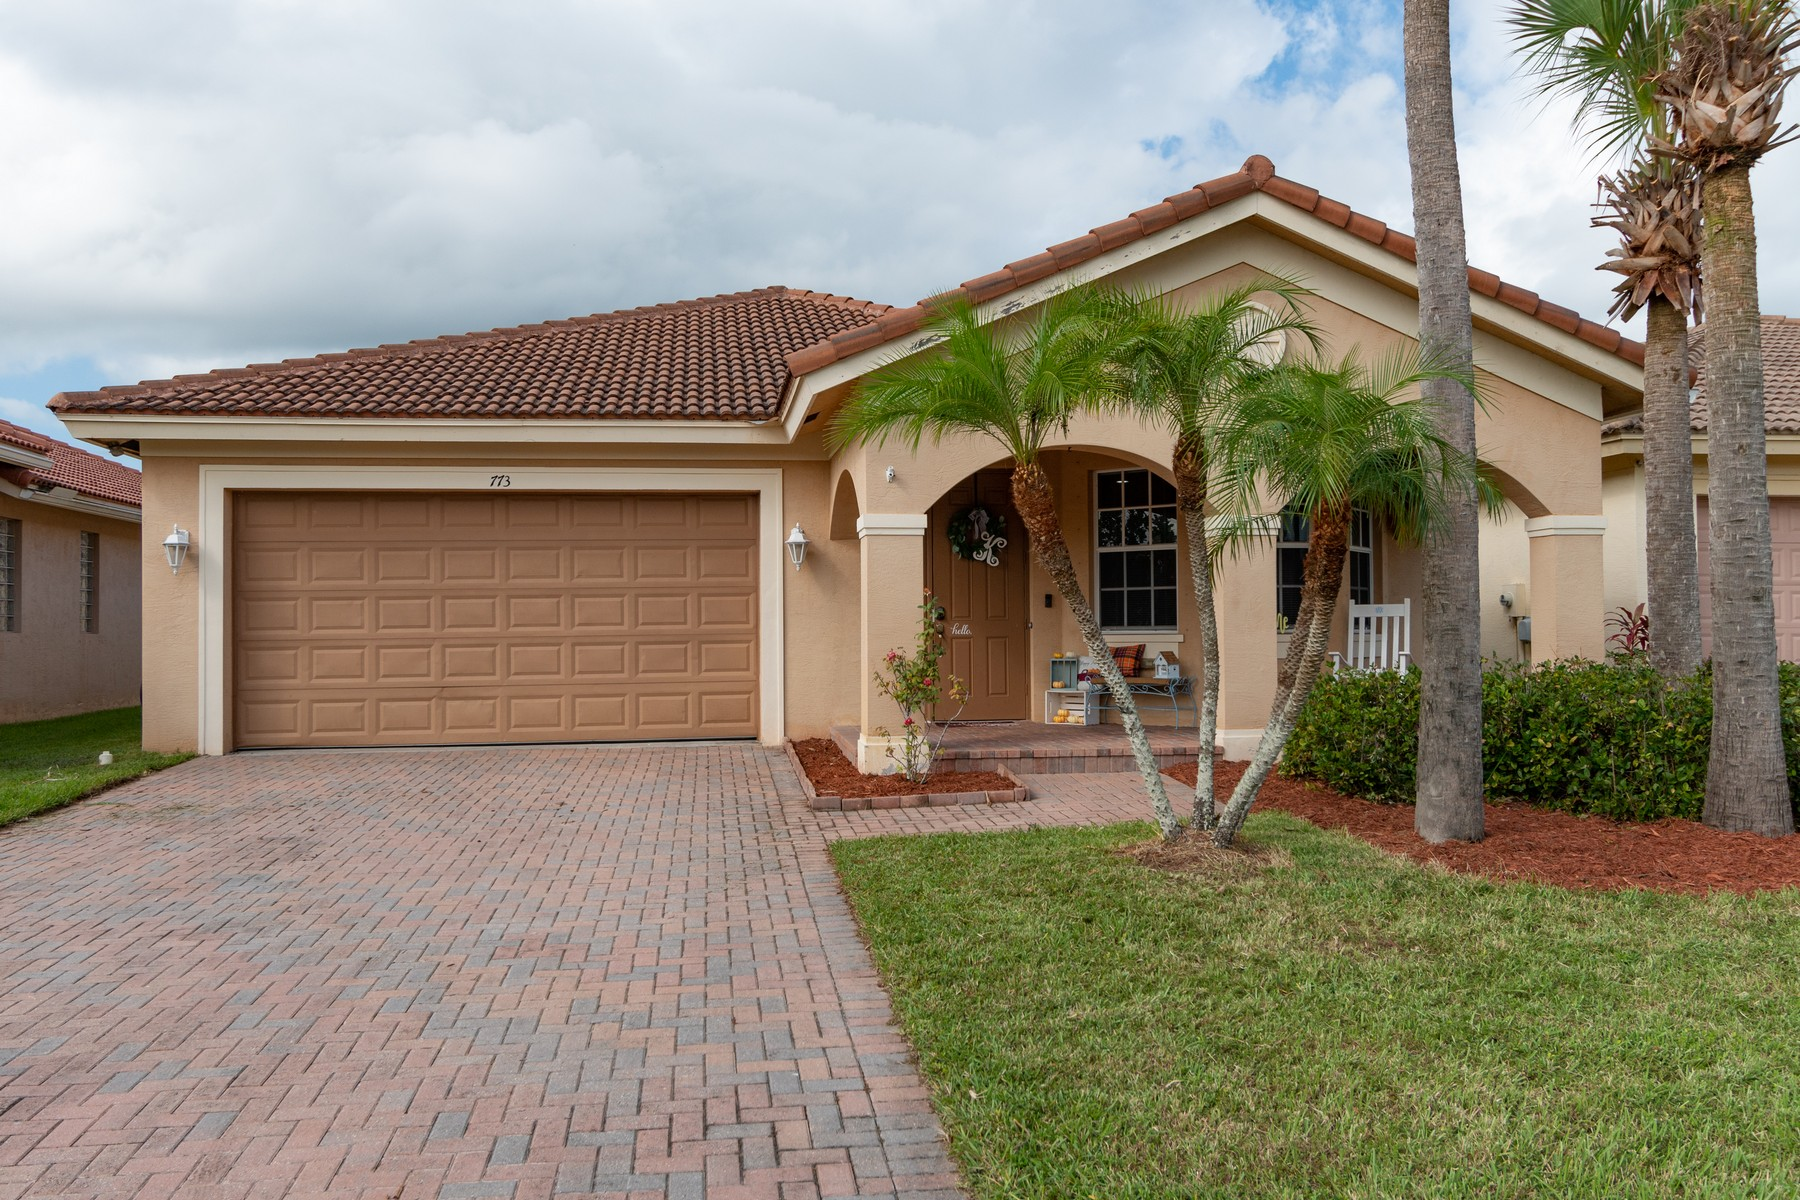 Additional photo for property listing at Beautiful Four Bedroom Home in Desirable Neighborhood 773 Bent Creek Drive Fort Pierce, Florida 34947 United States